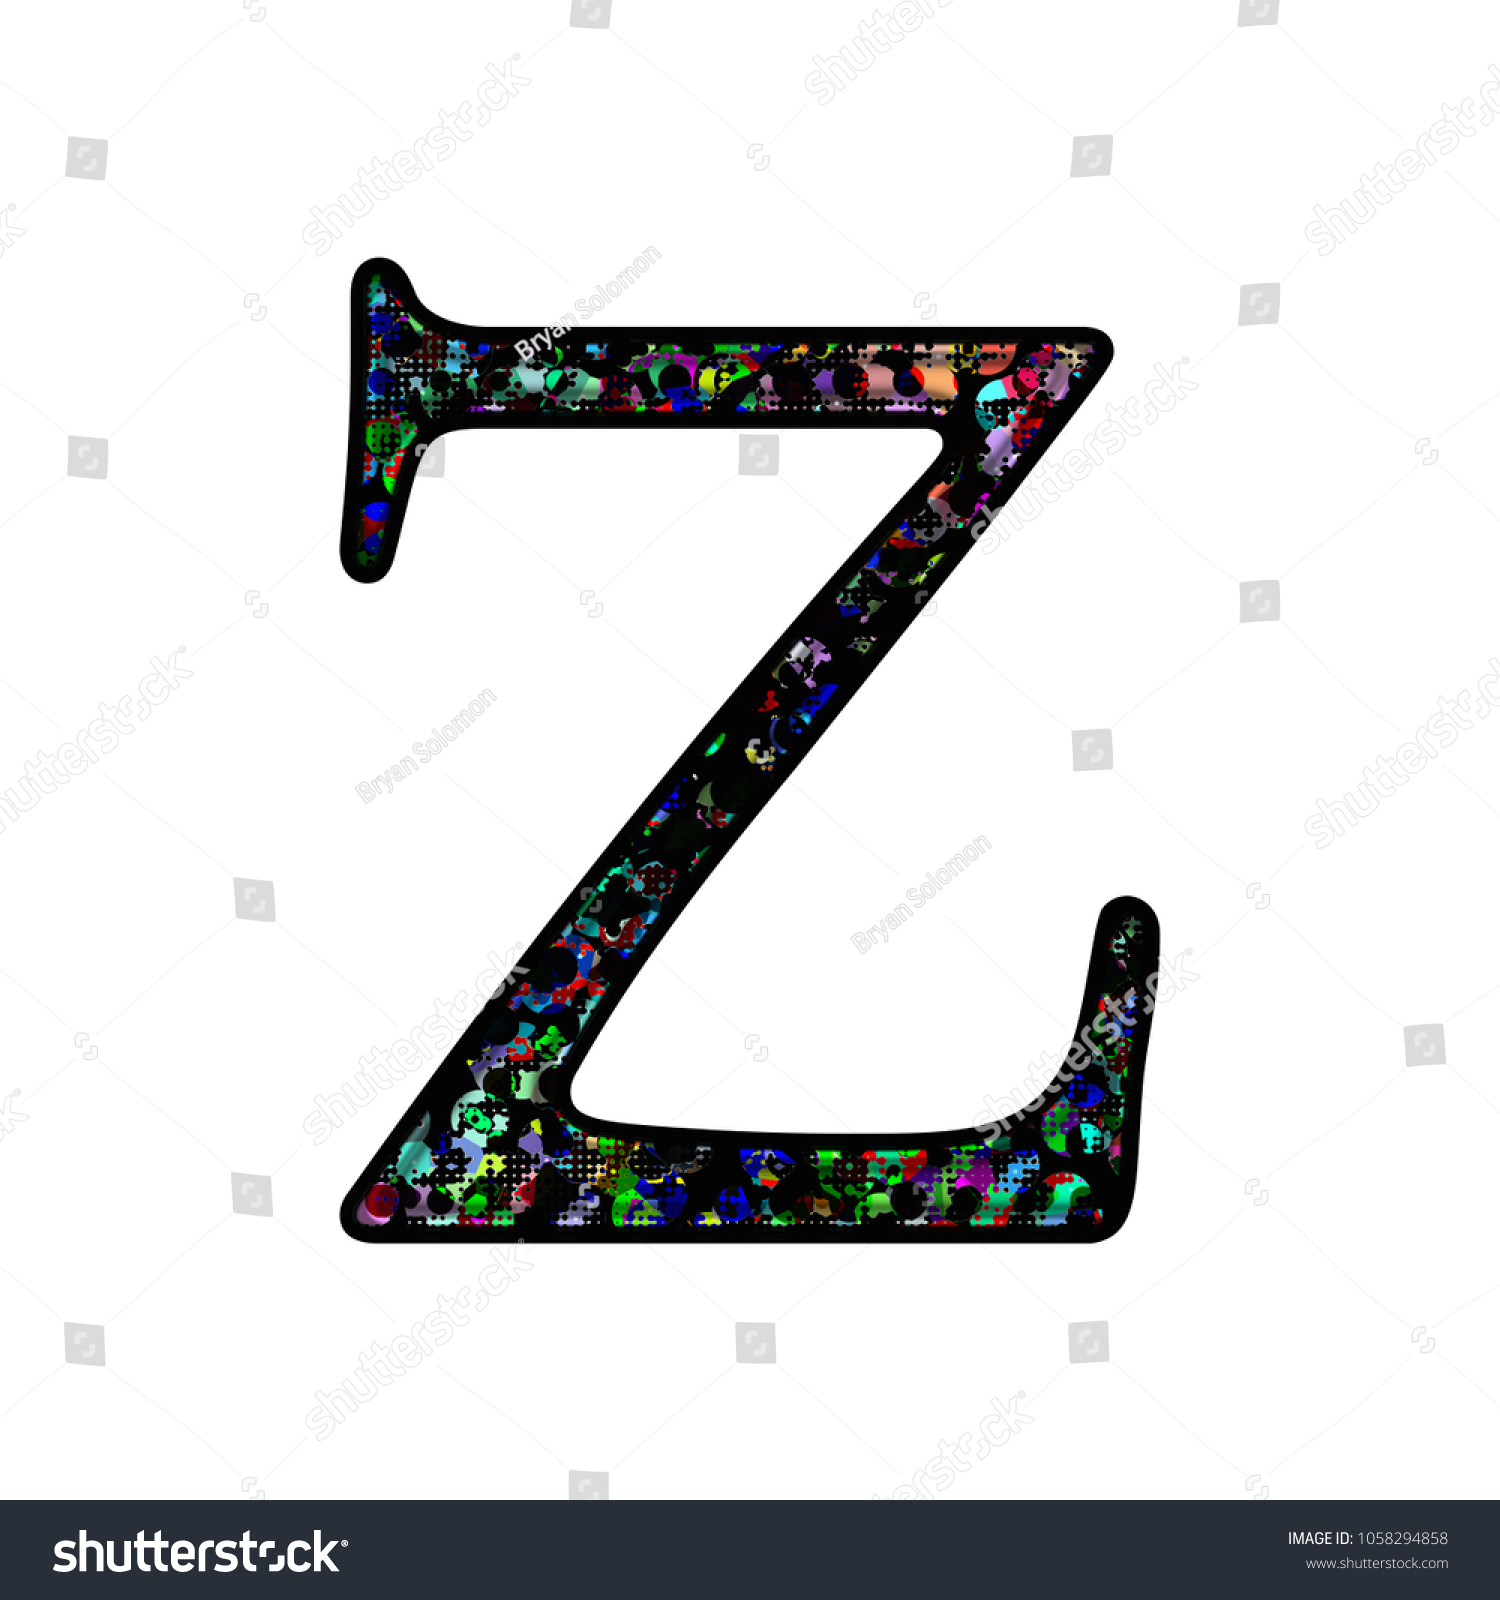 Graffiti style splattered paint letter z uppercase or capital in a 3d illustration with